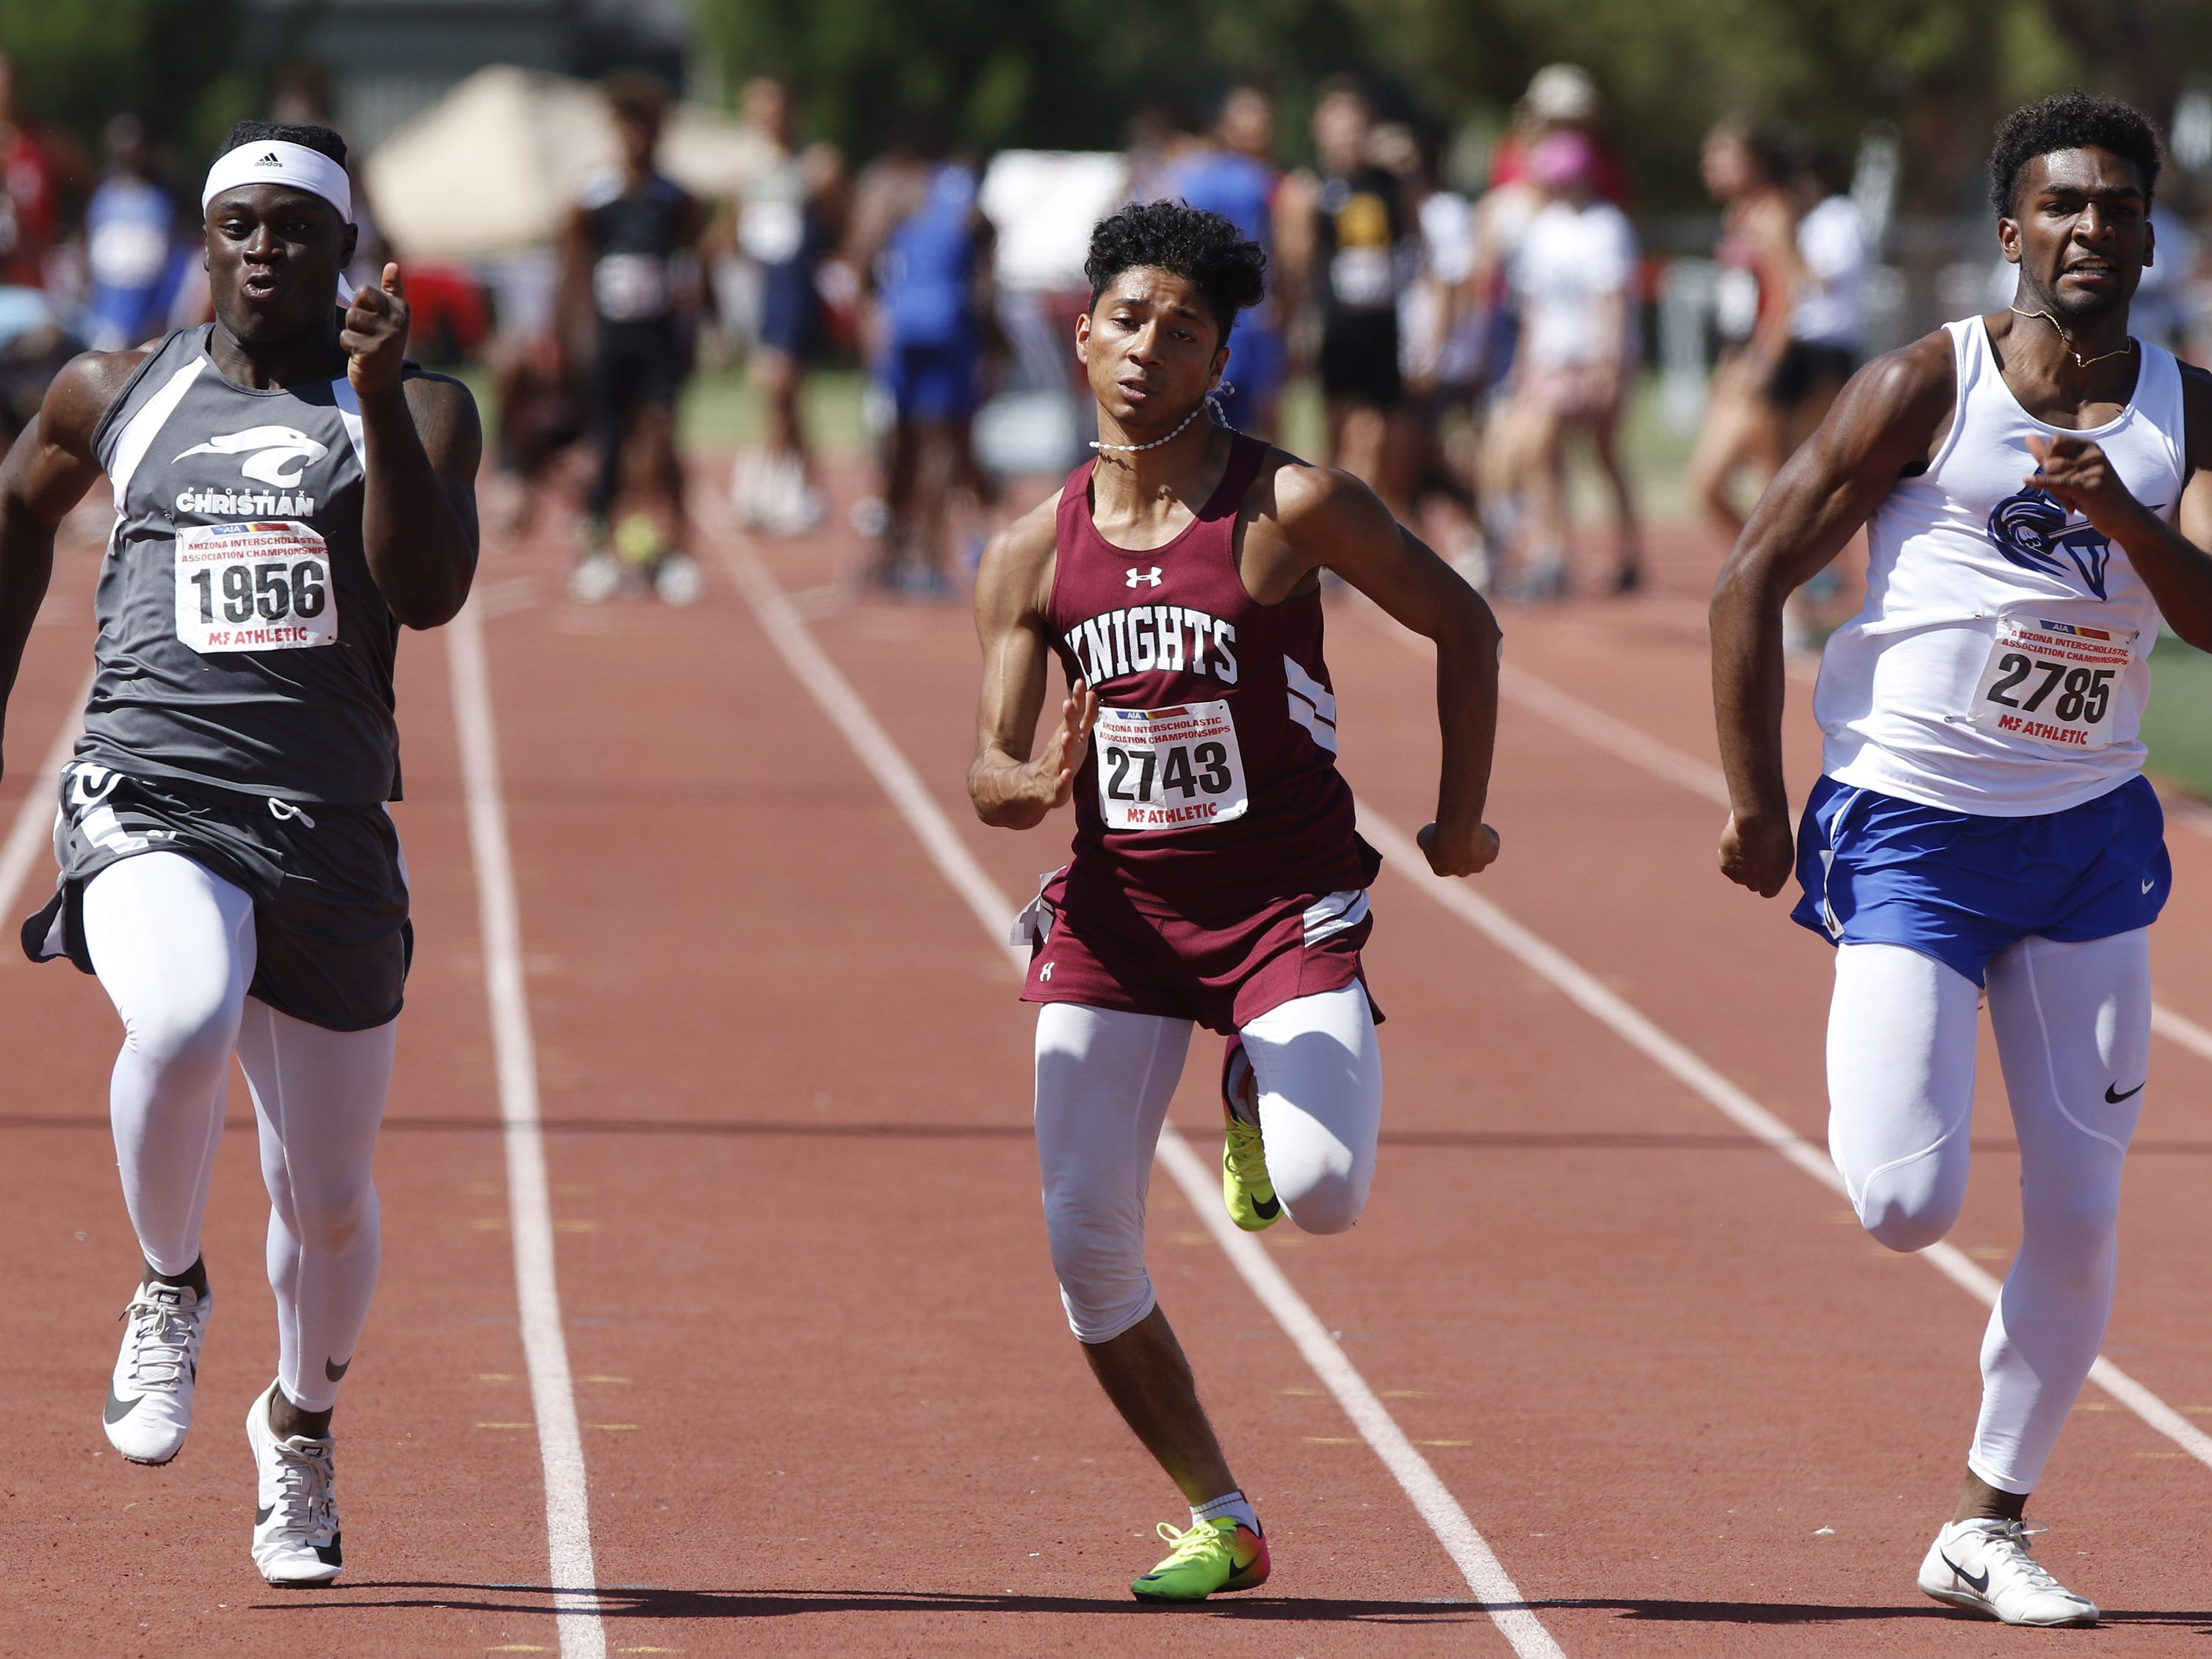 Phoenix Christian's Manace Freeman, Arizona Lutheran's Jacob Holquin and Valley Christian's Jalen Grijalva sprint down the stretch during the Division III 100 meters championship during the 2019 Arizona State Track and Field Championship at Mesa Community College in Mesa, Arizona, May 04, 2019.